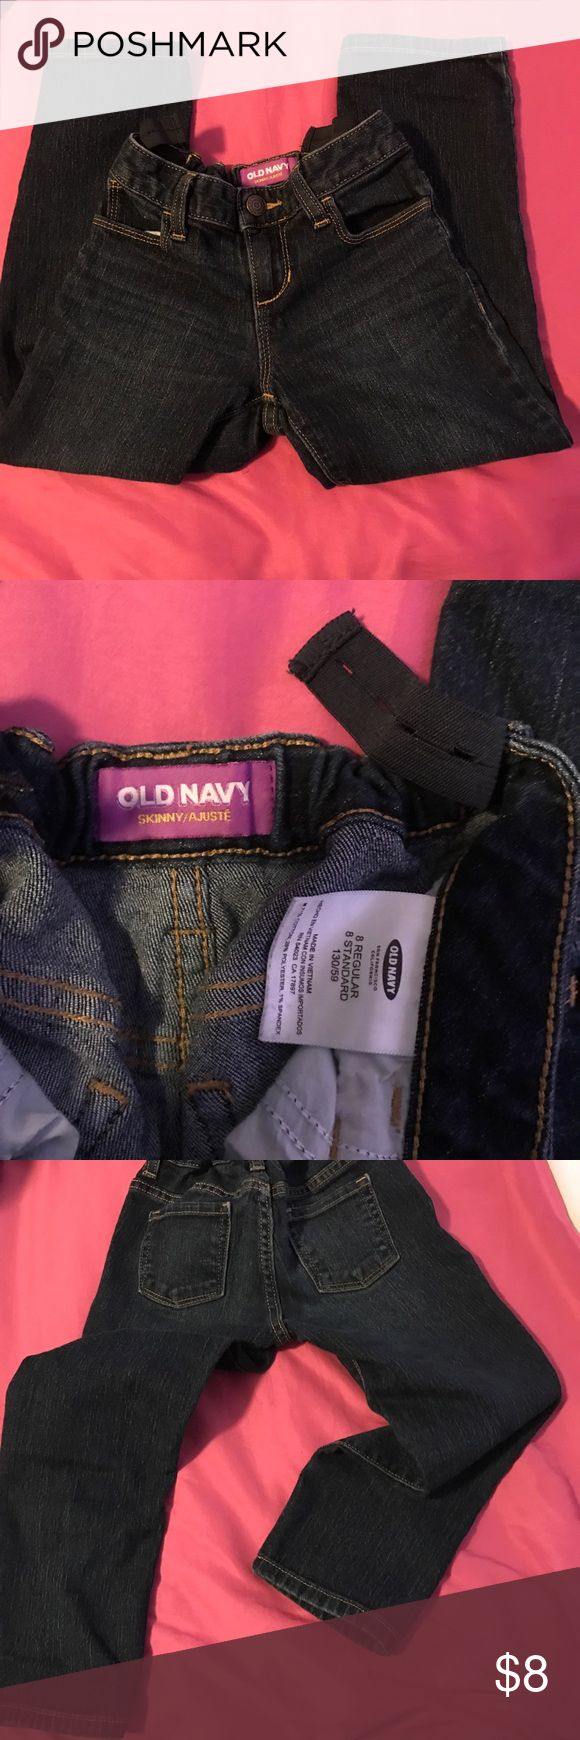 Girls Old Navy jeans In good condition. Some wear on the knees. The snap and zipper works great. Has the adjustable waist bands and they are in great working condition. Old Navy Bottoms Jeans